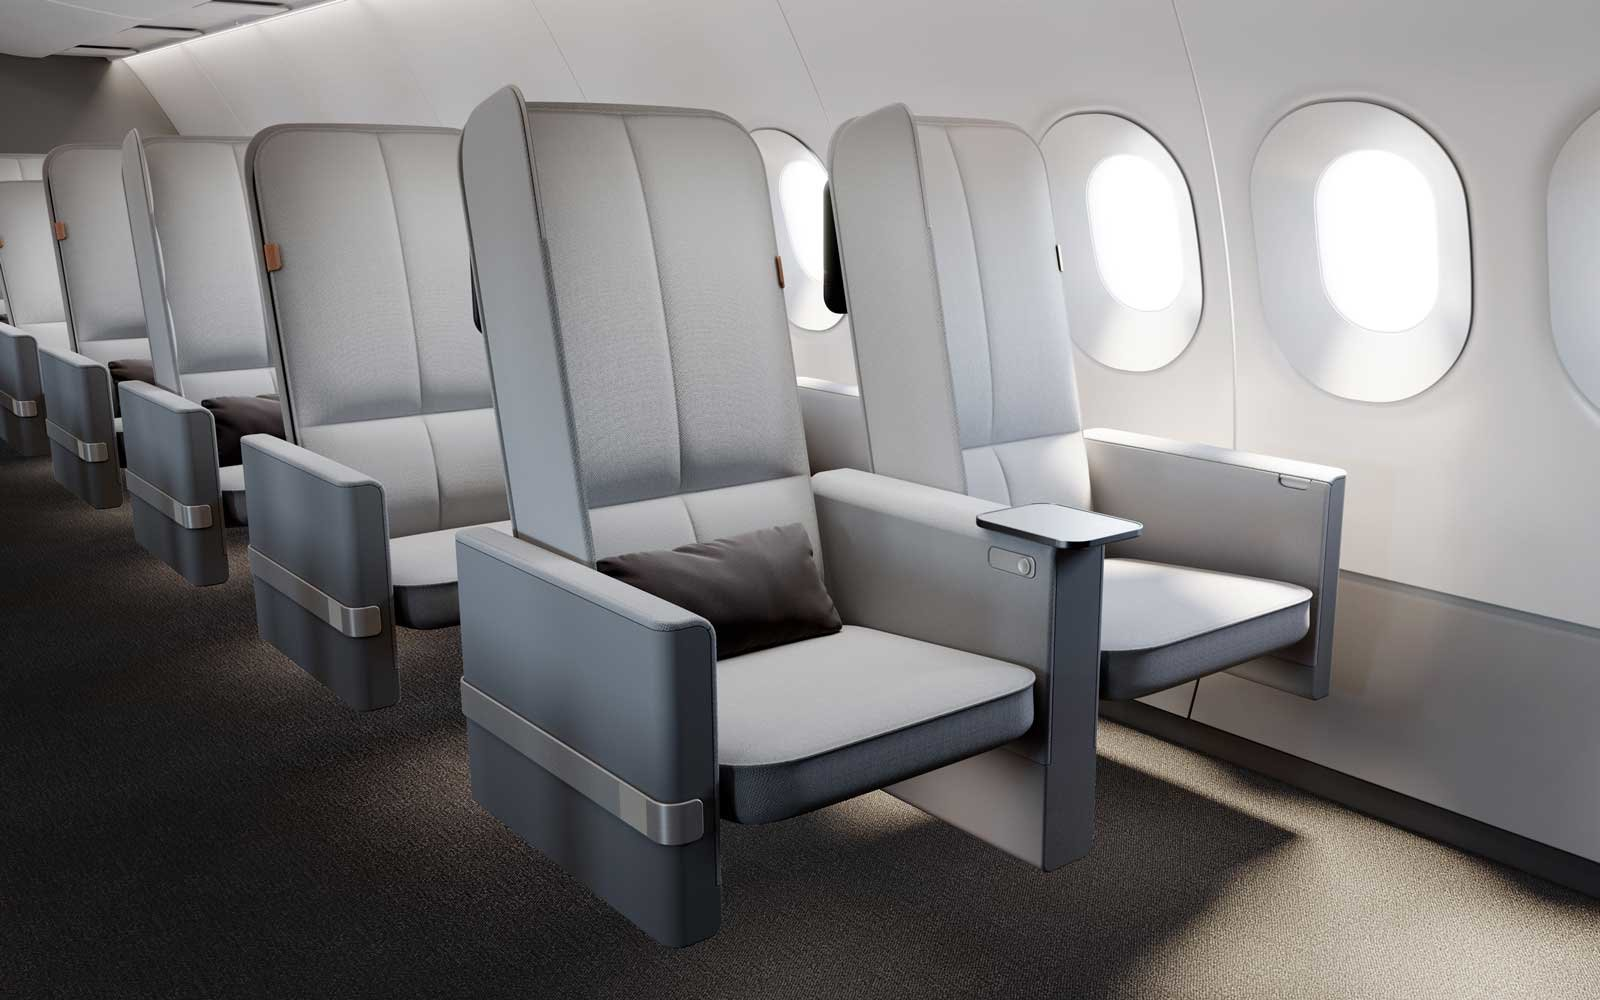 Airplane Seat Design by New Territory, Sleep Easier in Economy